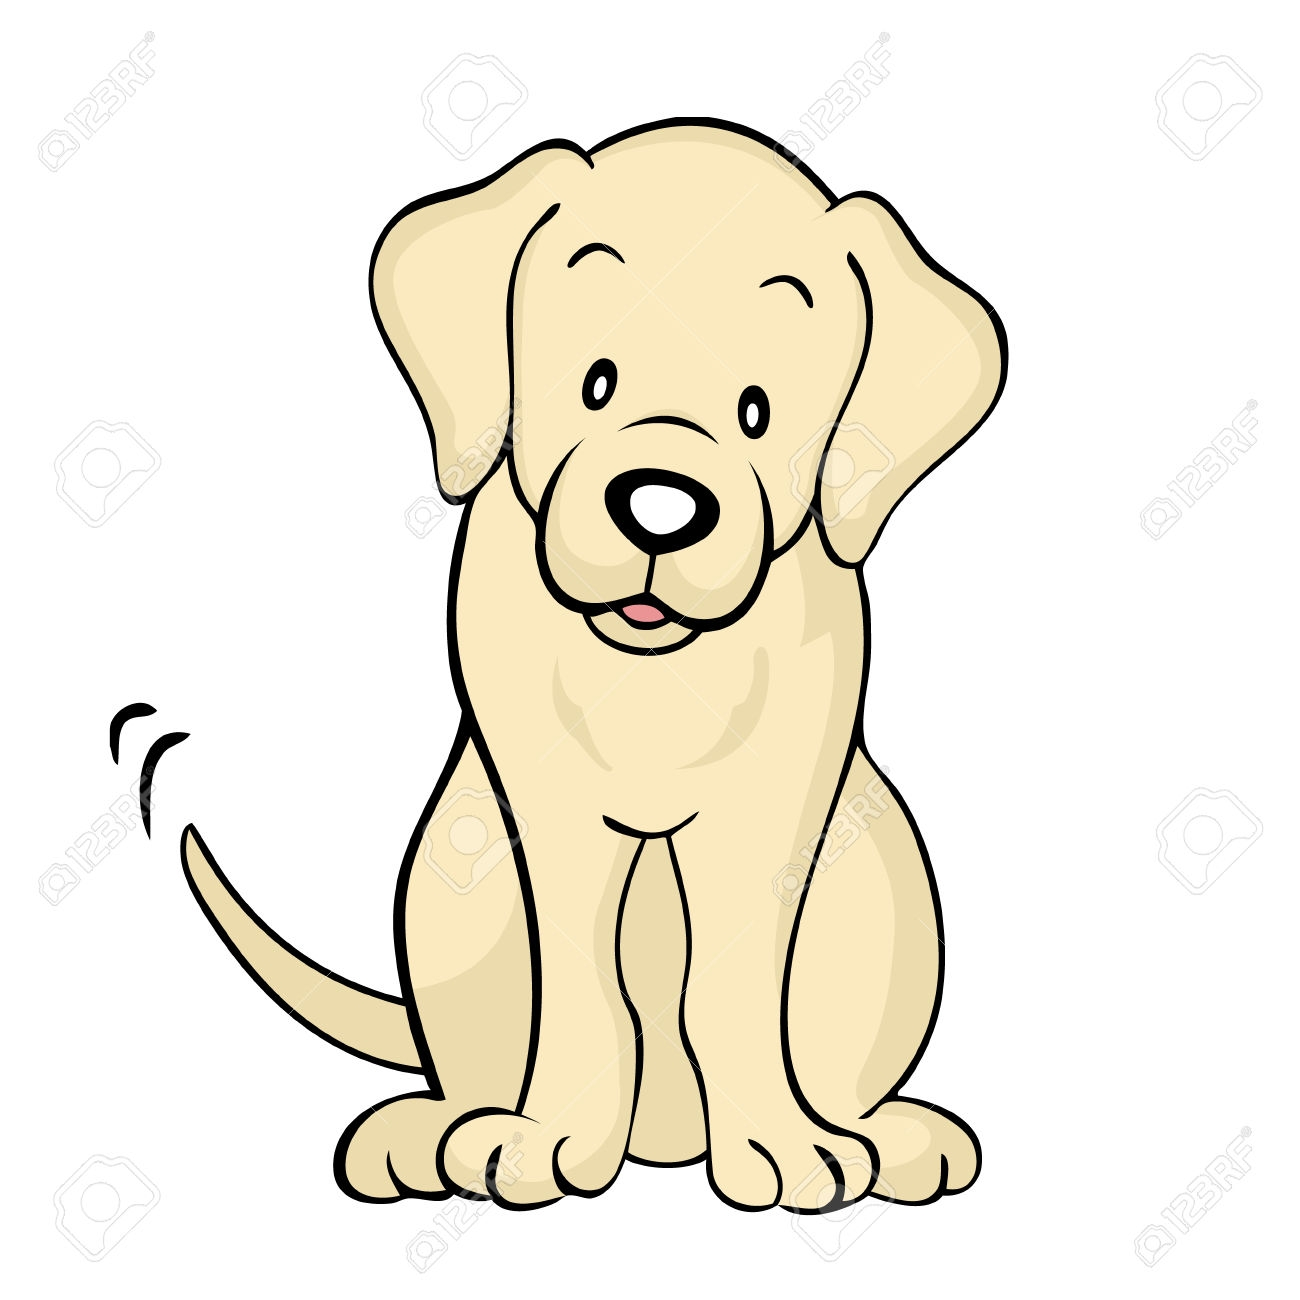 Lab dog clipart 1 » Clipart Station.